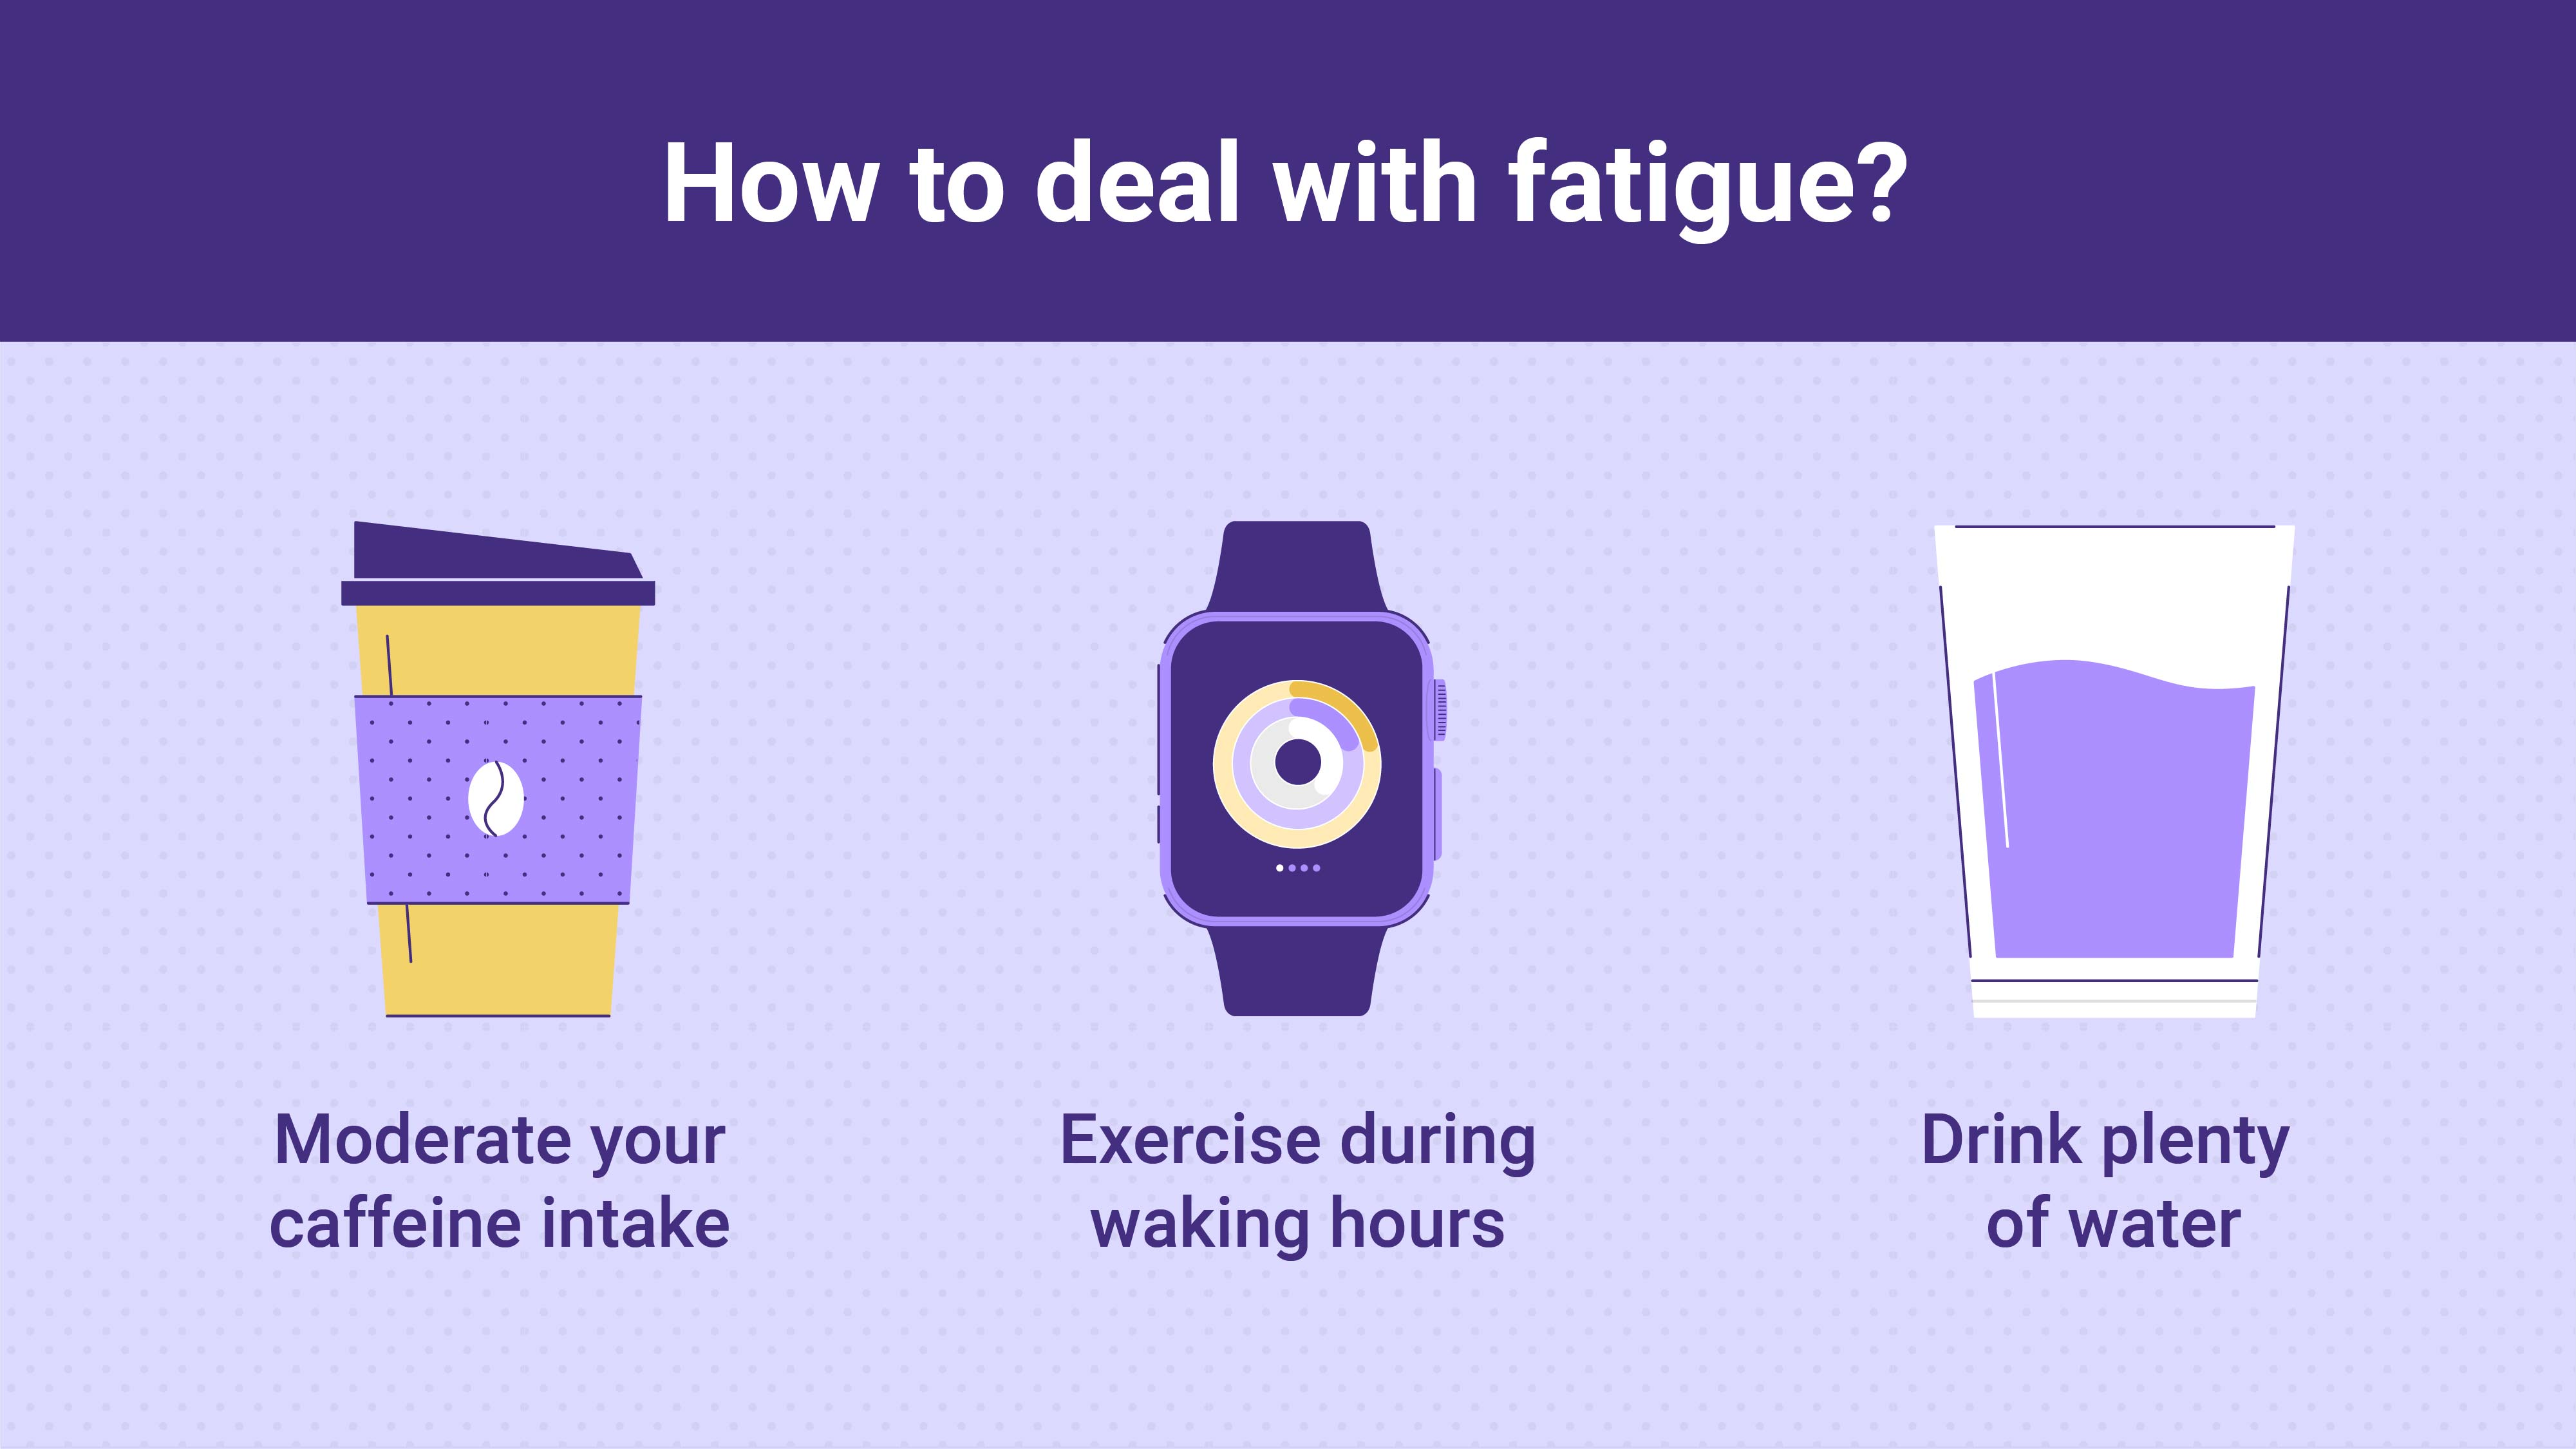 How to deal with fatigue